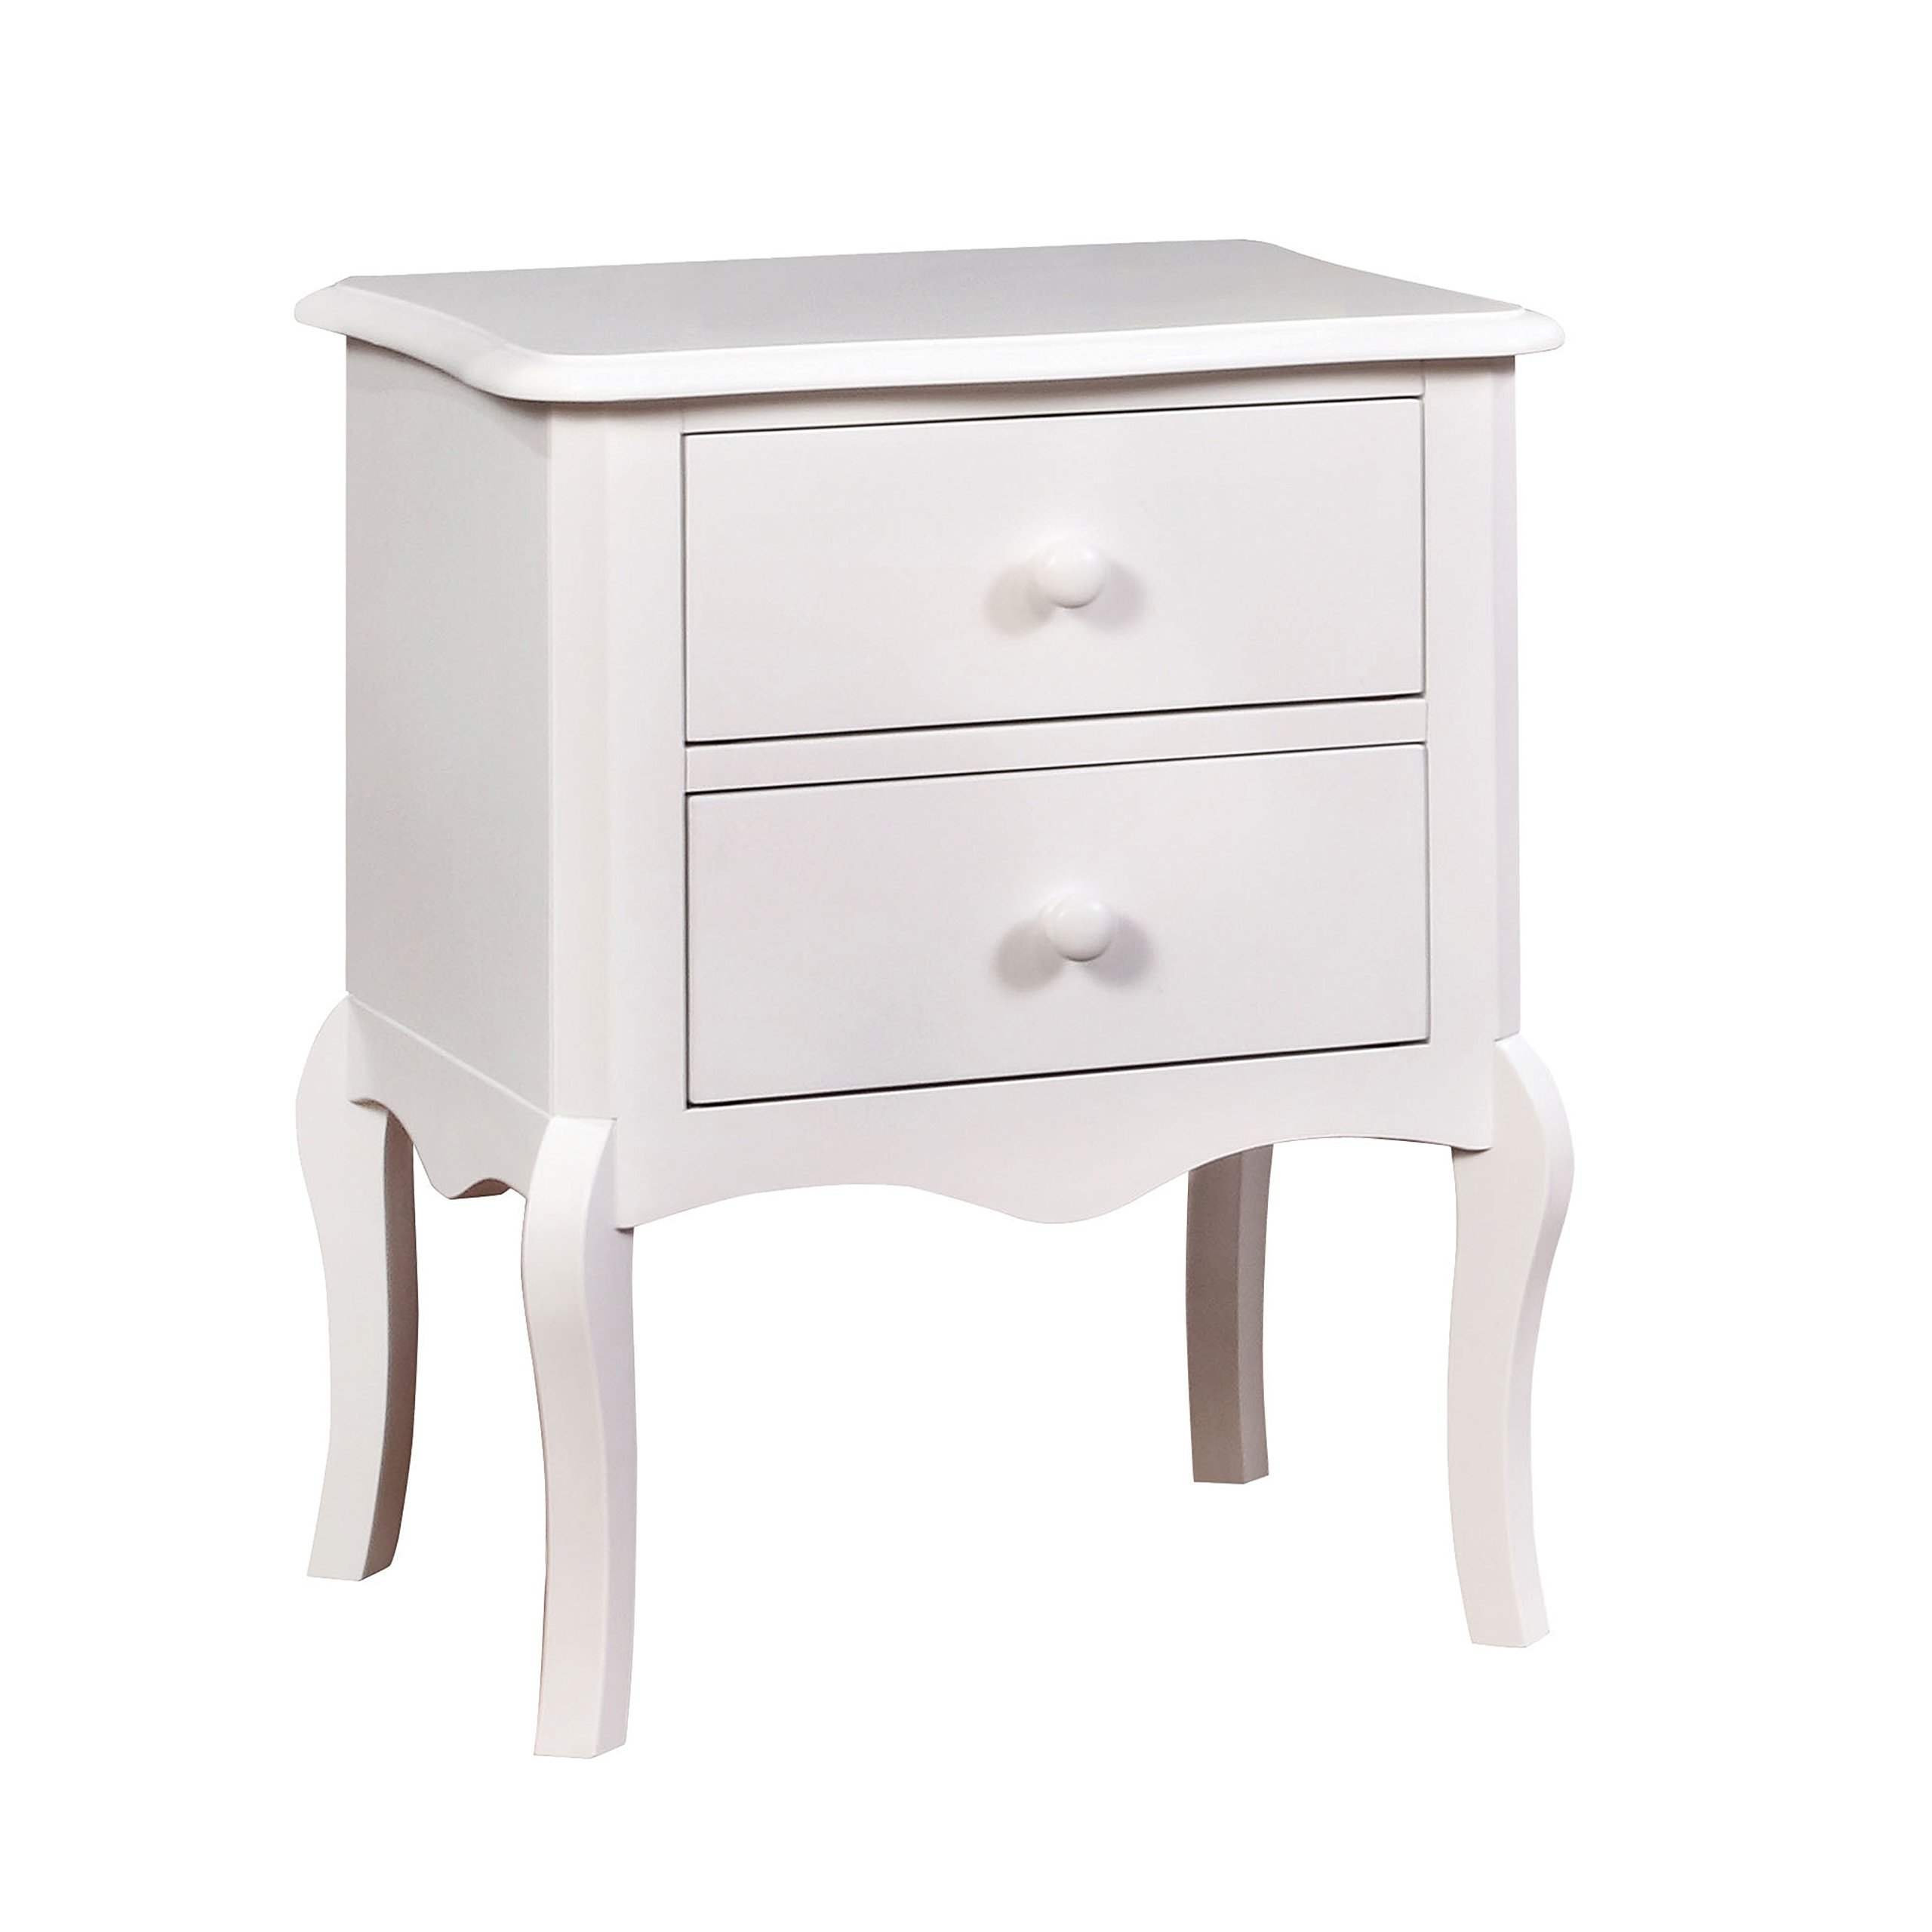 HOMES: Inside + Out IDF-AC325WH Edna Nightstand Childrens, White